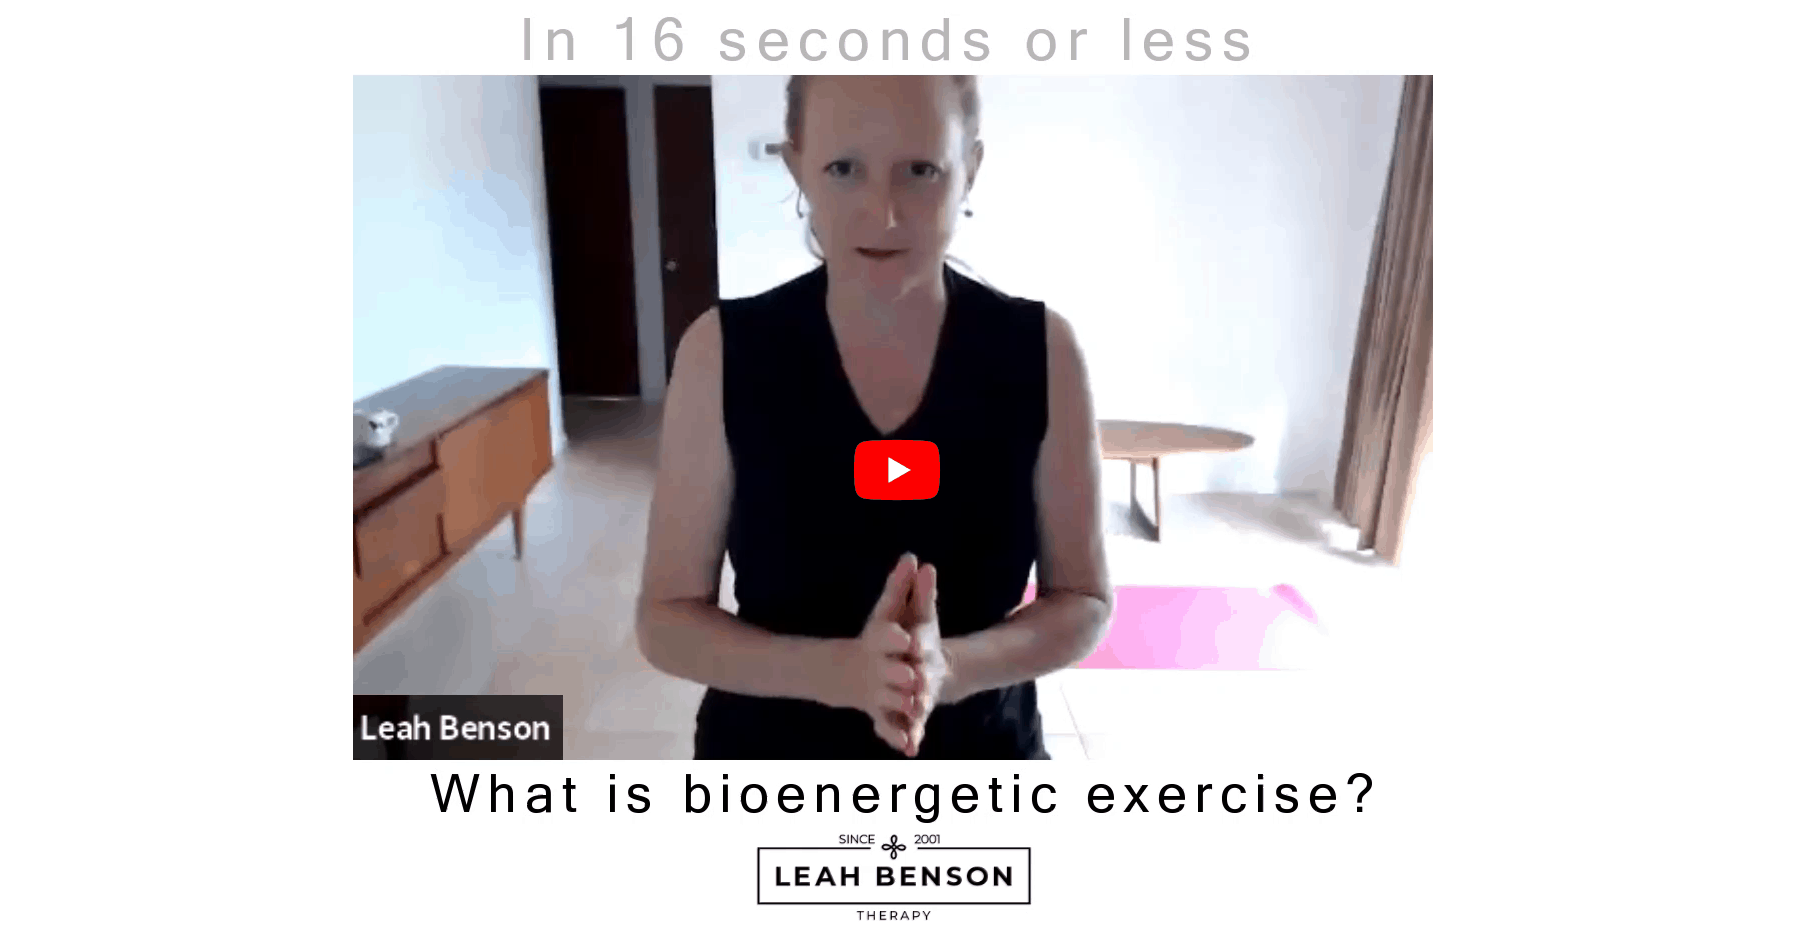 What is bioenergetic exercise?